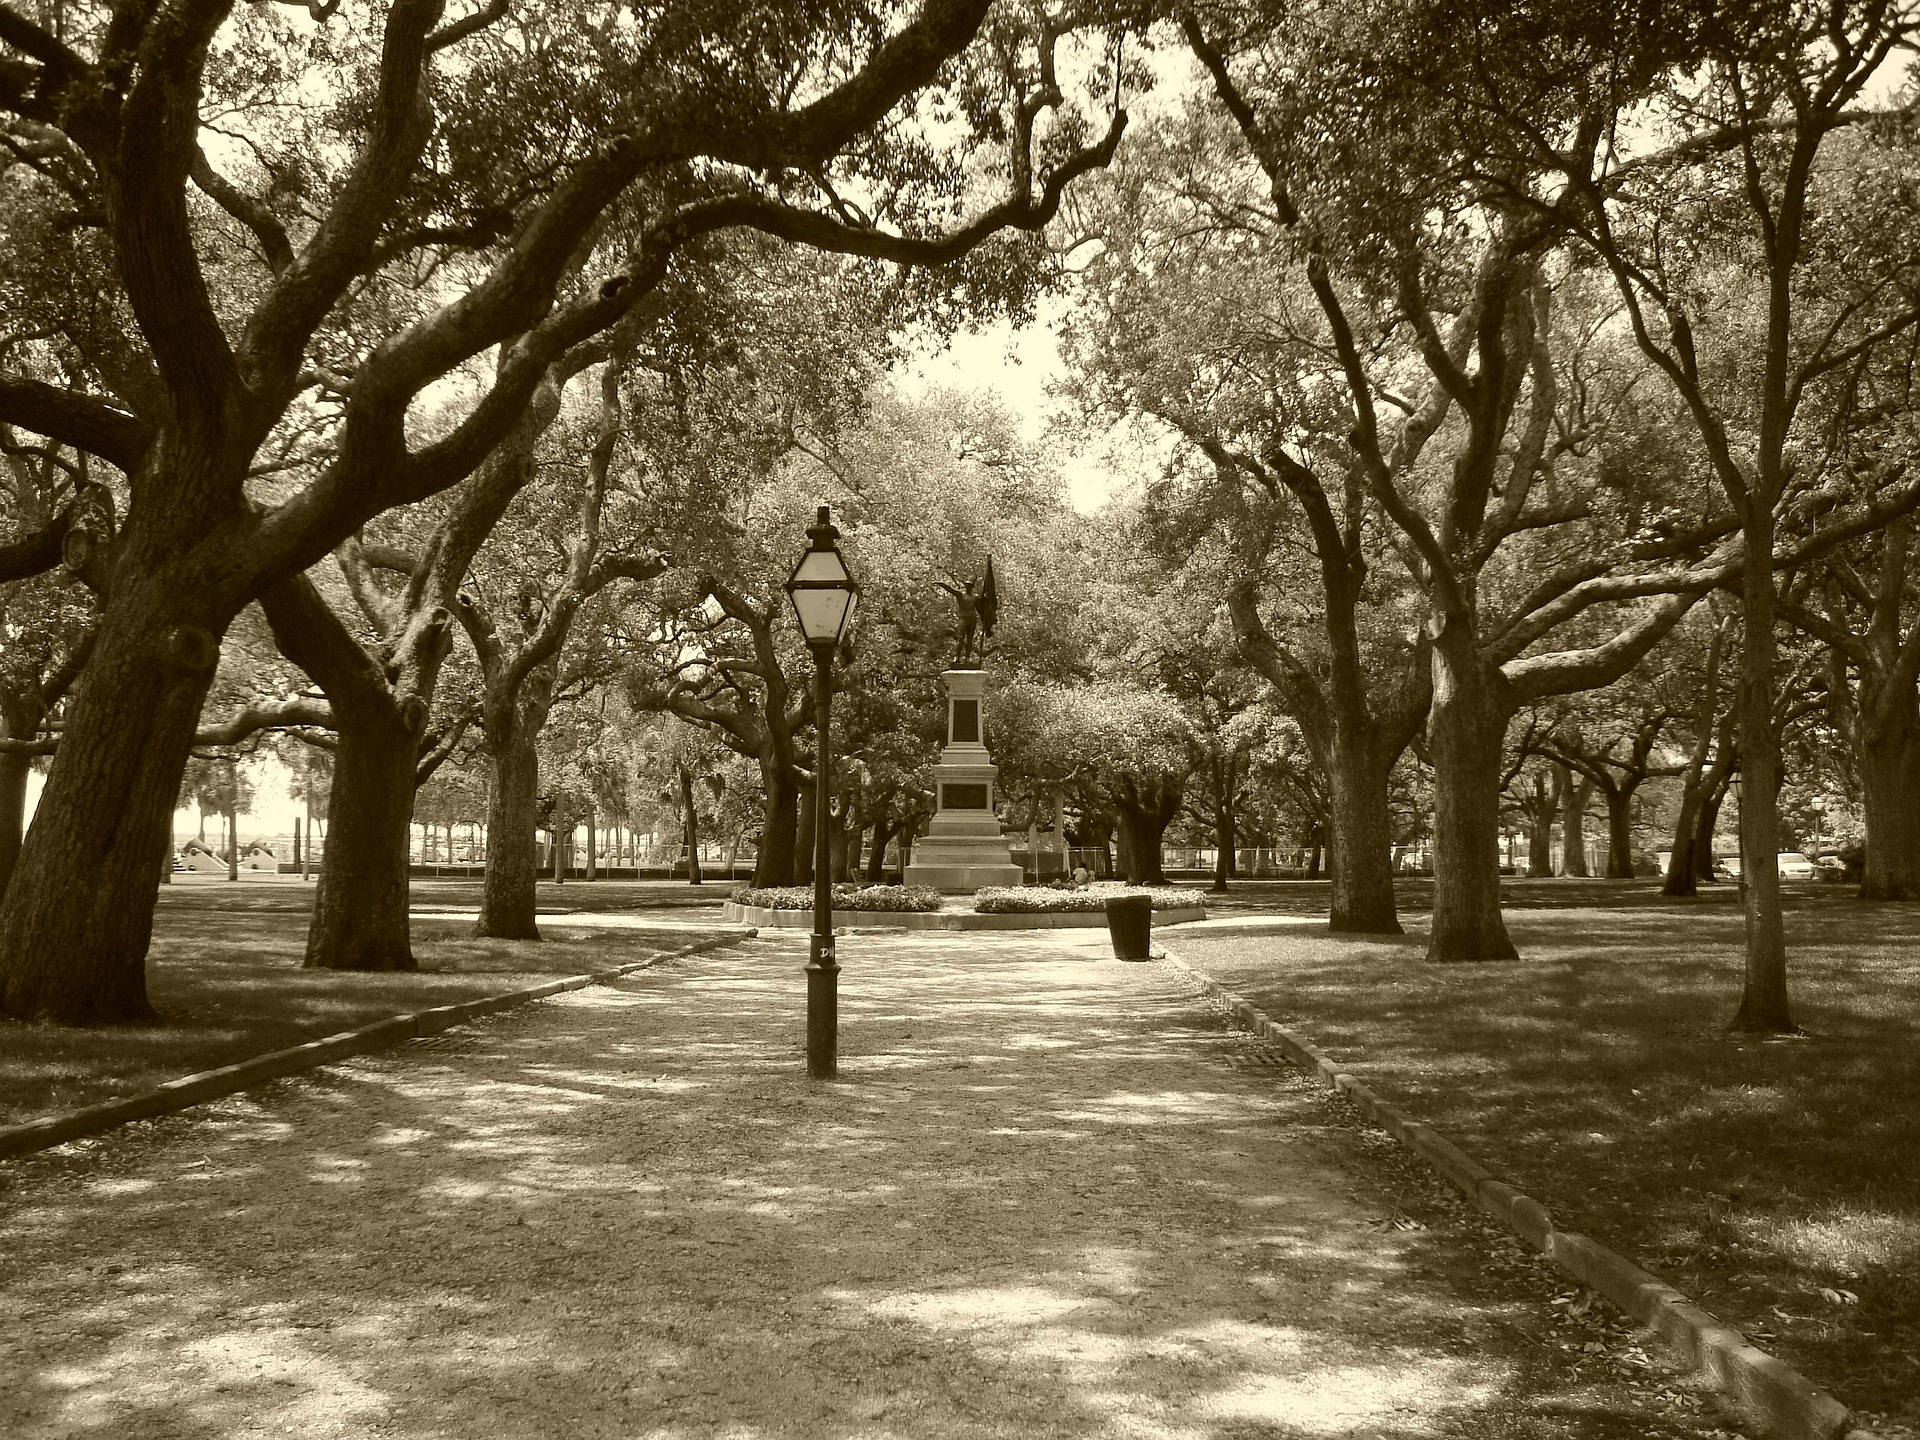 A view of the central walk and central monument at white point gardens